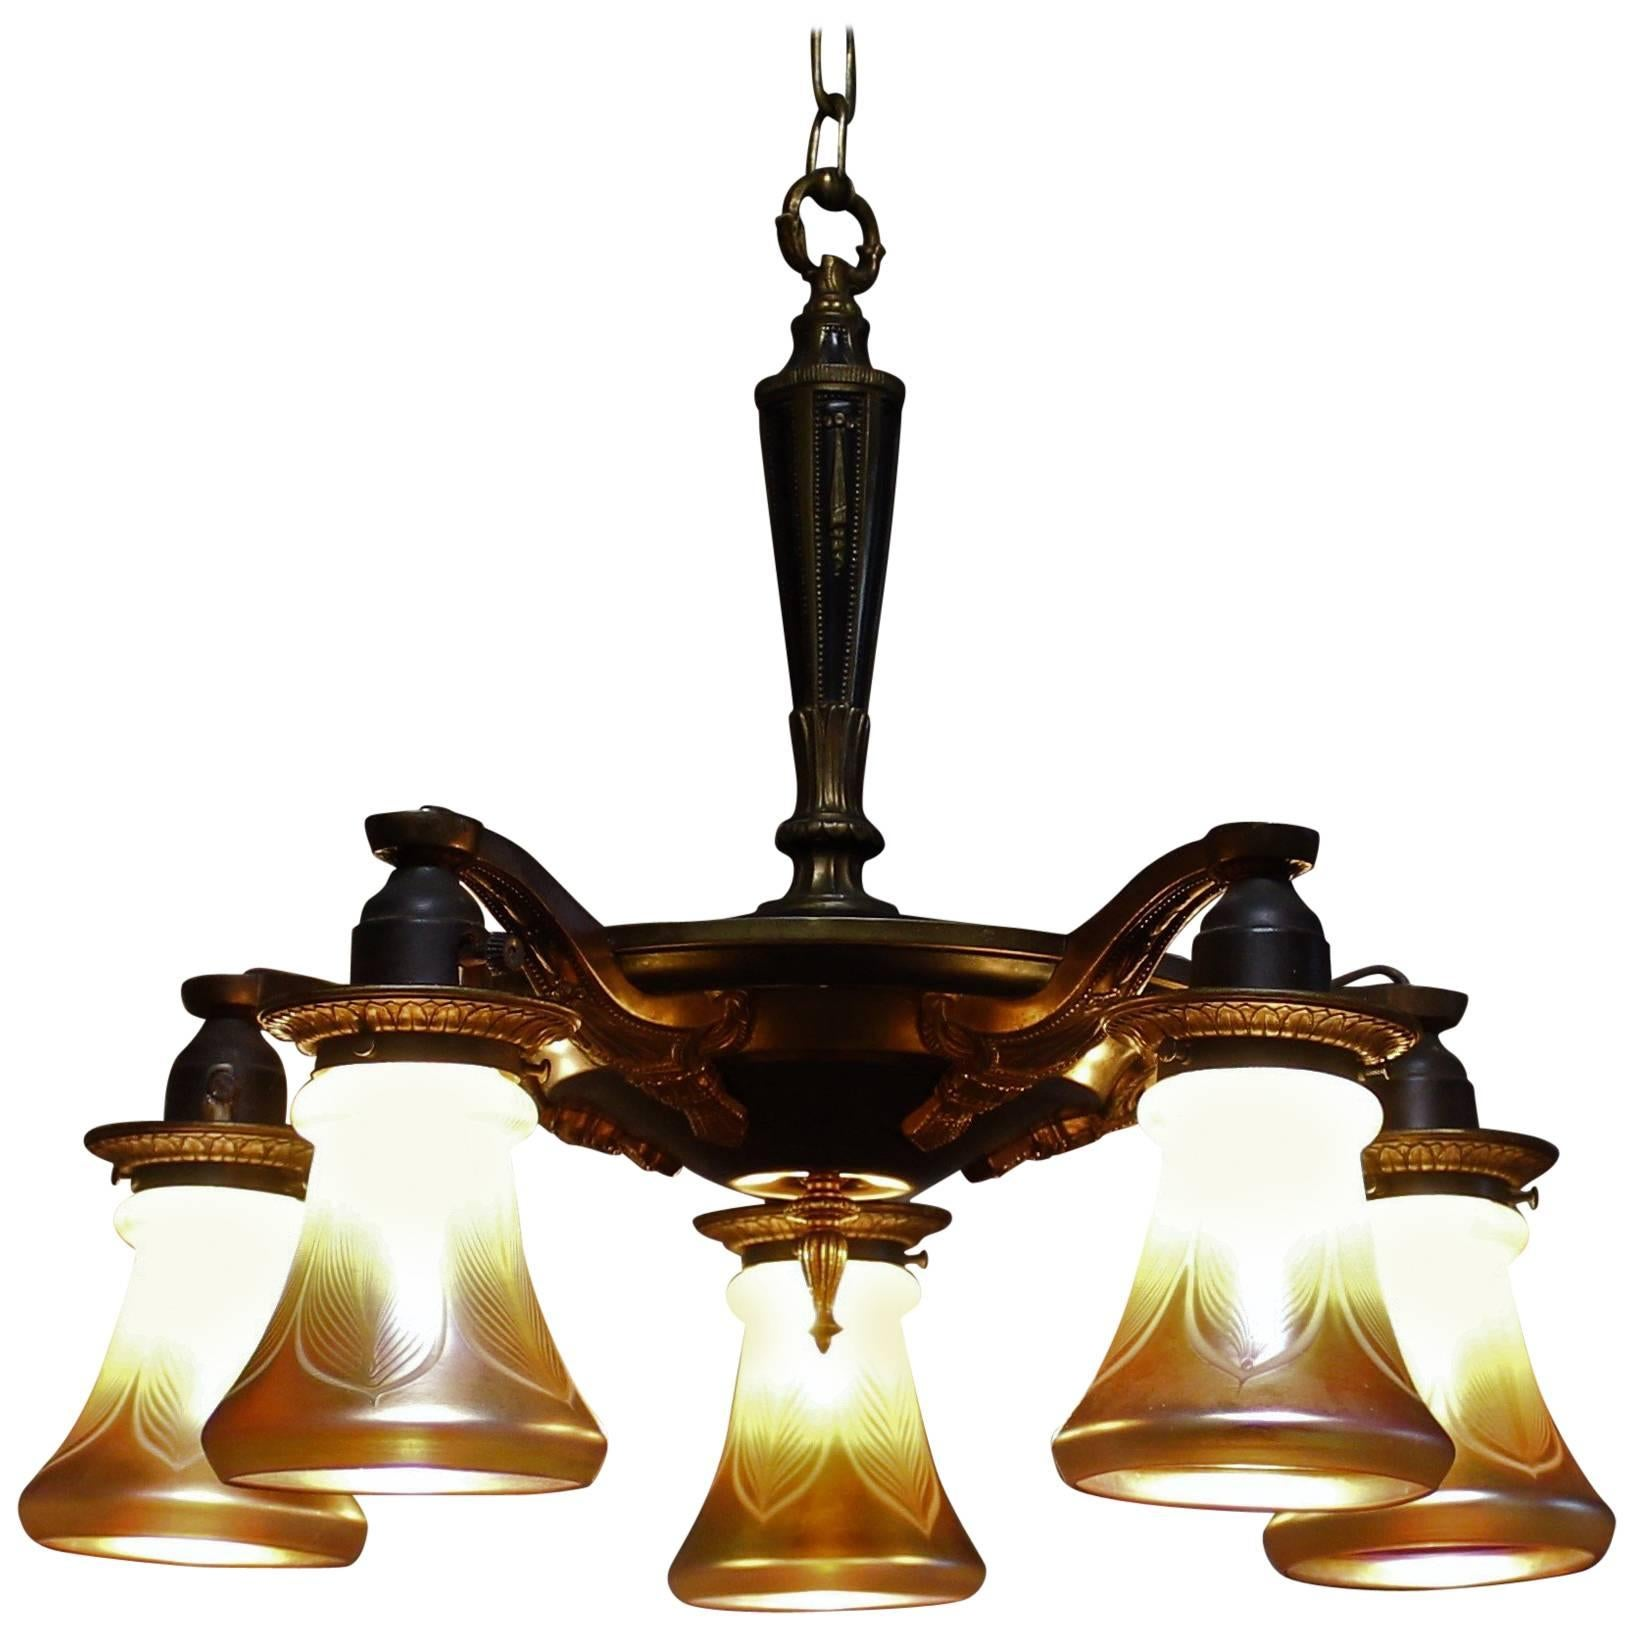 Five-Arm Brass Chandelier with Irridescent Glass Shades